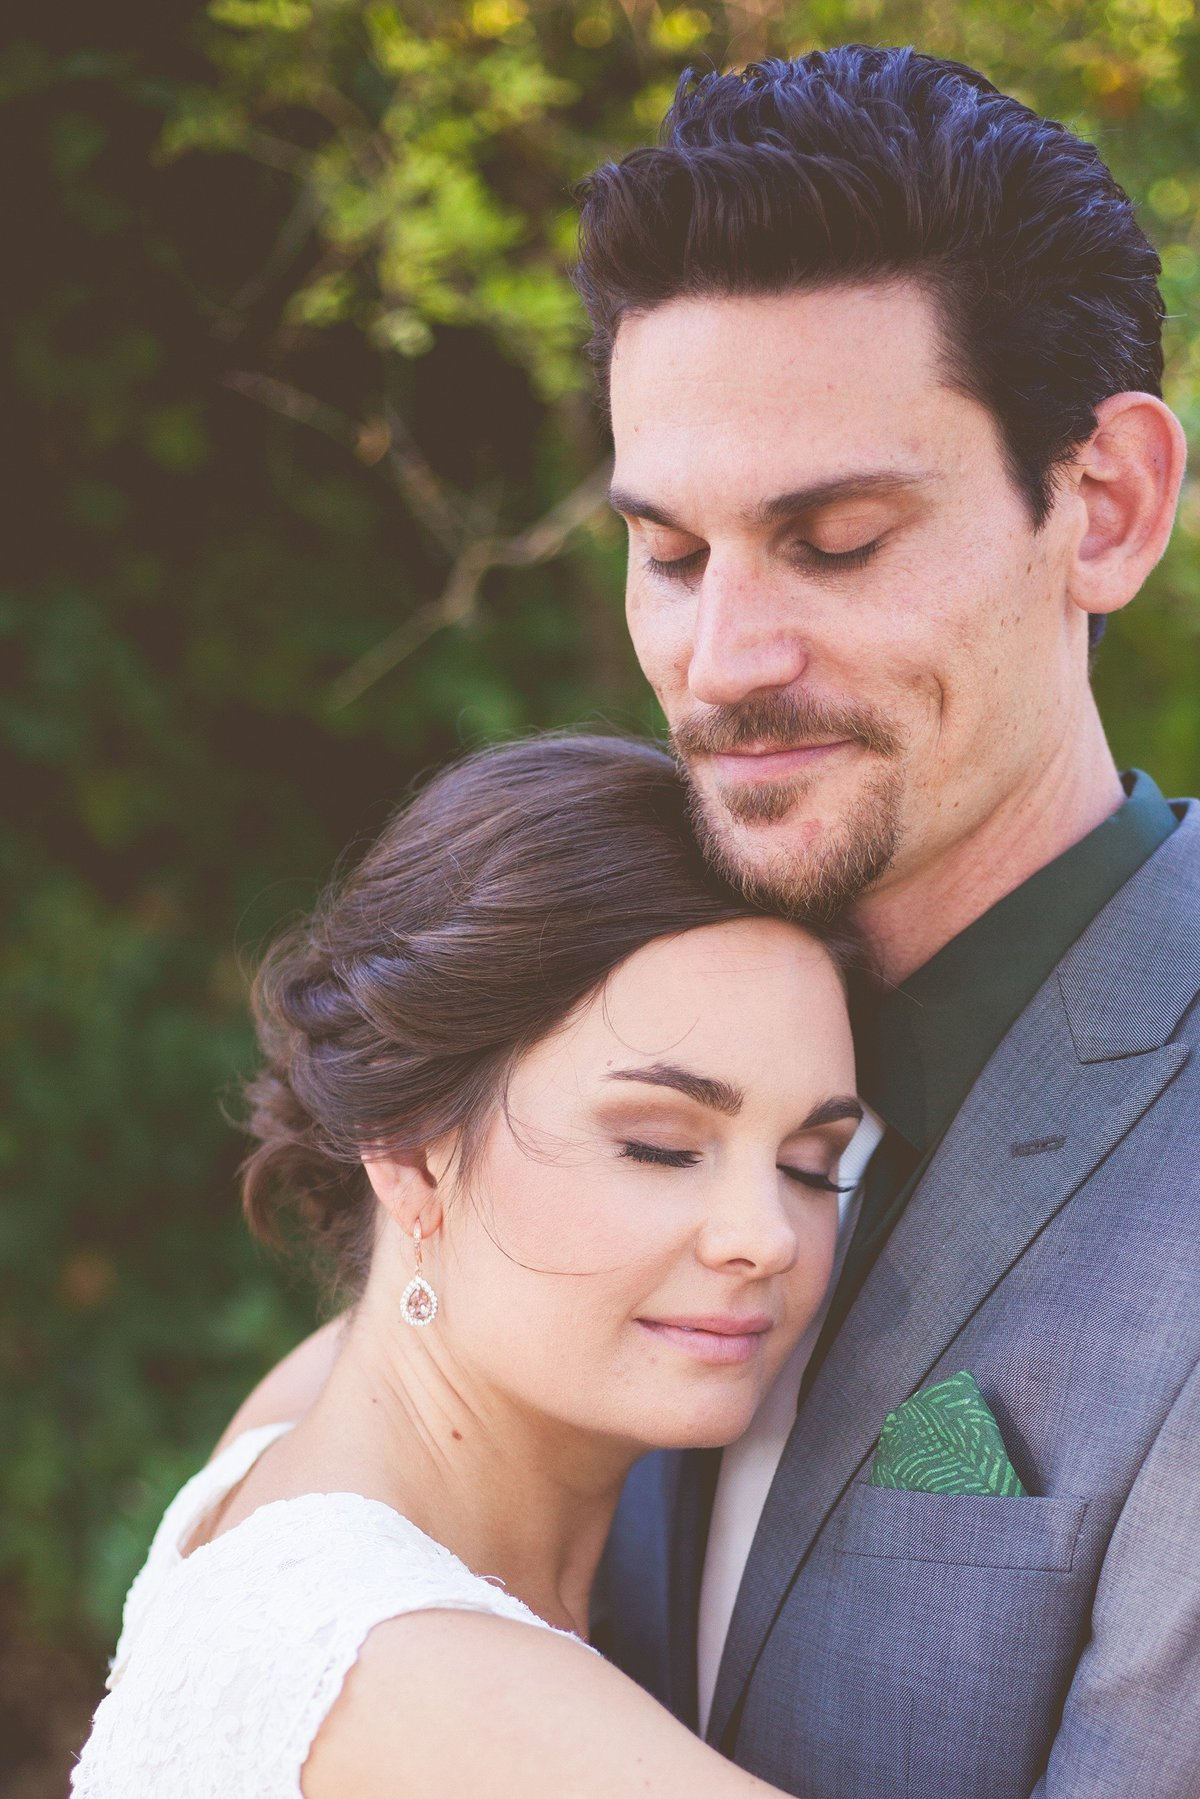 atascadero-wedding-photography-emily-gunn-37_web